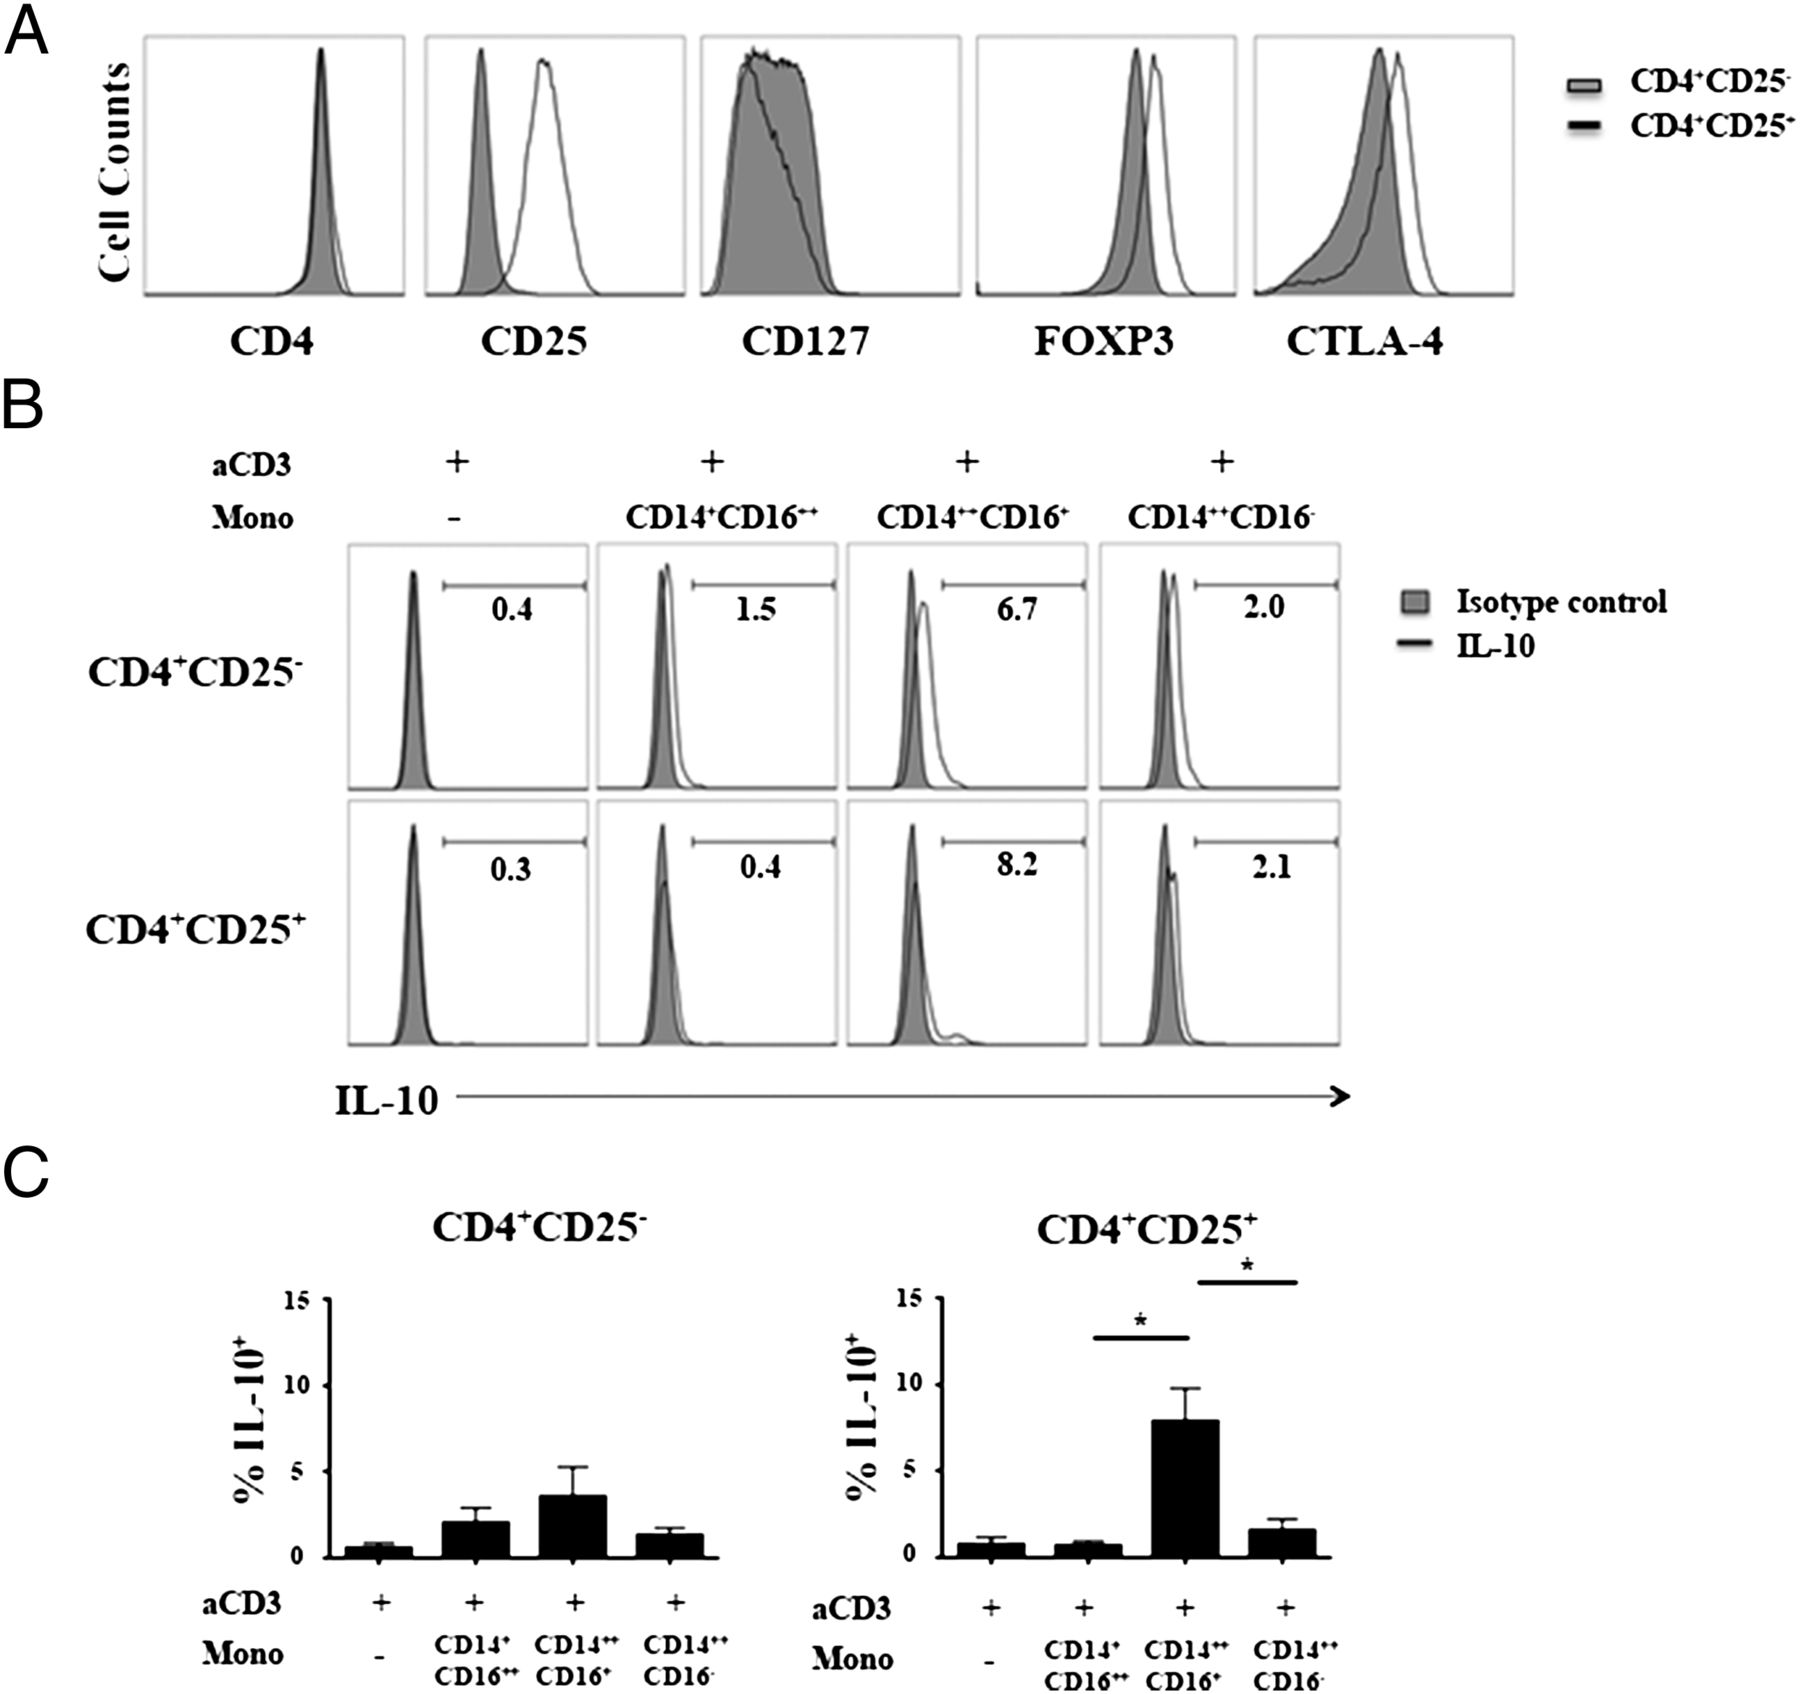 CD14++CD16+ Monocytes Are Enriched by Glucocorticoid